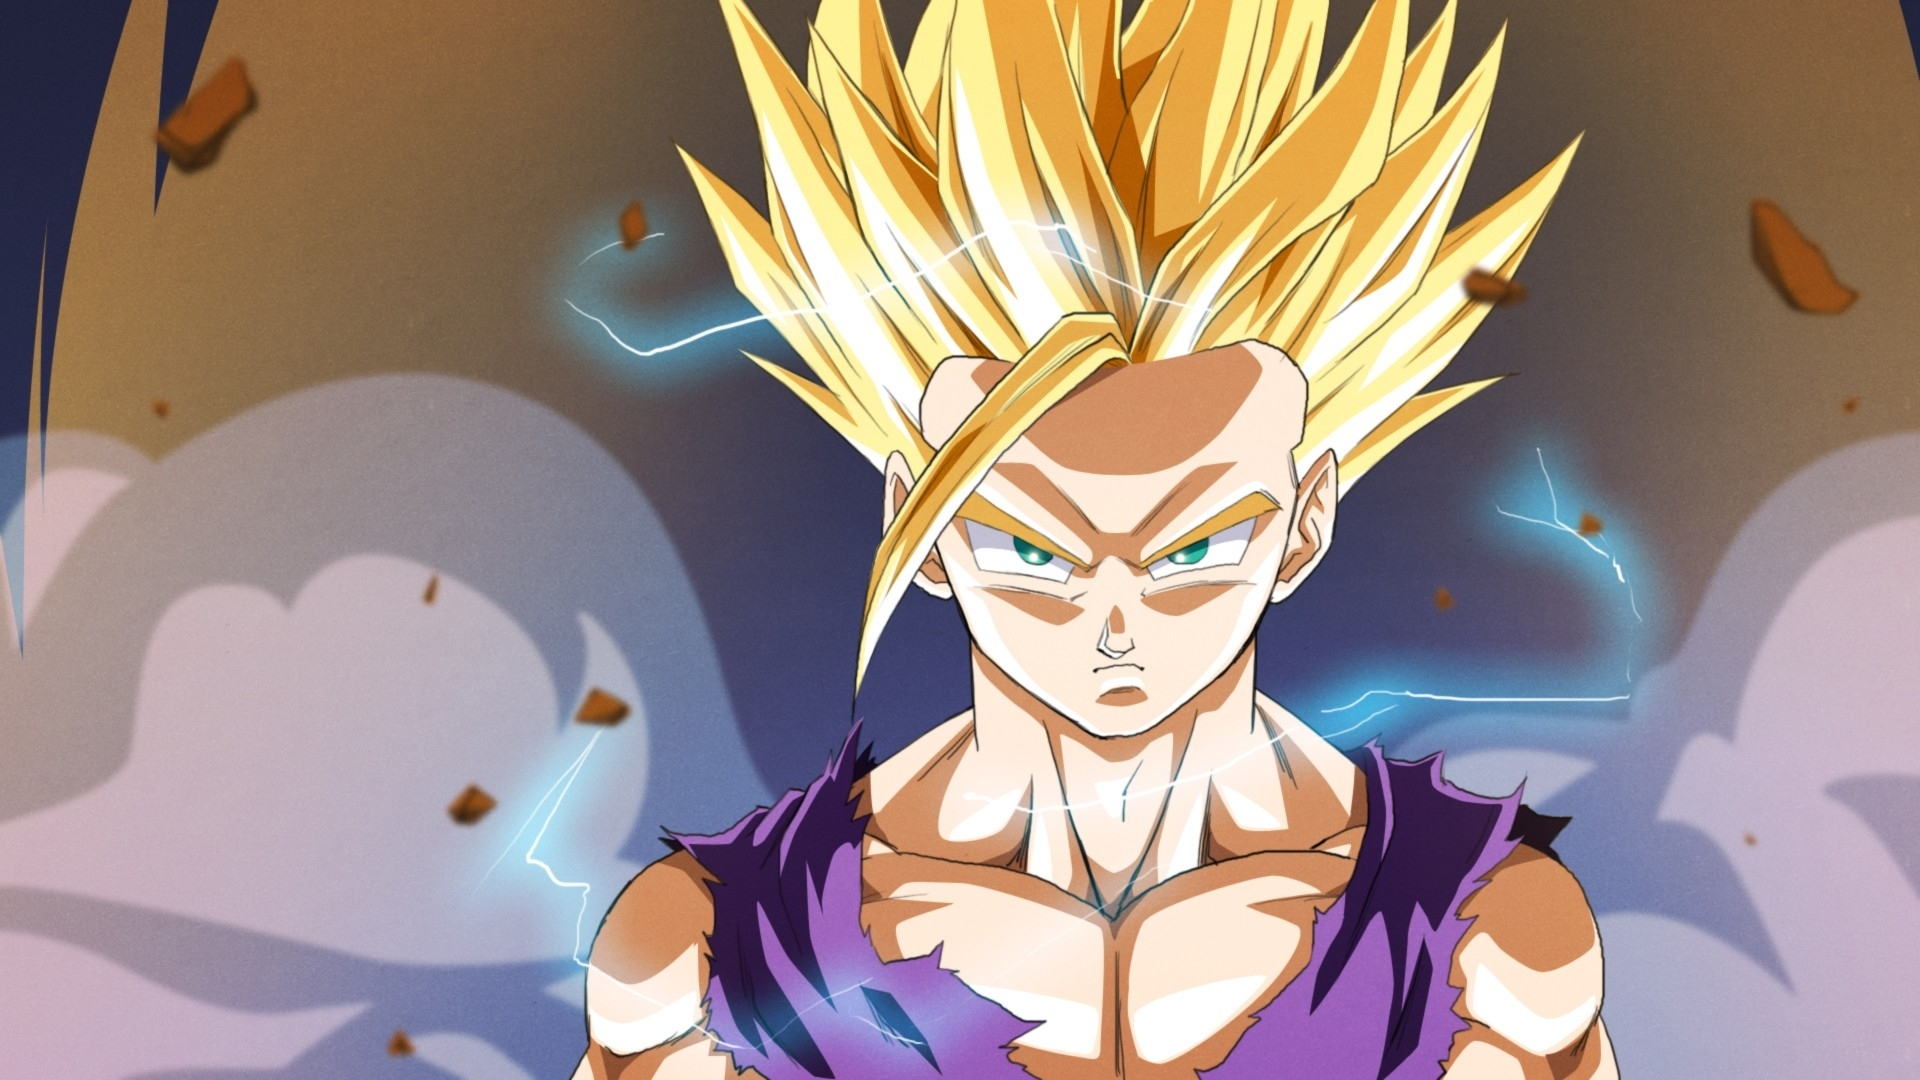 138 gohan (dragon ball) fonds d'écran hd | arrière-plans - wallpaper